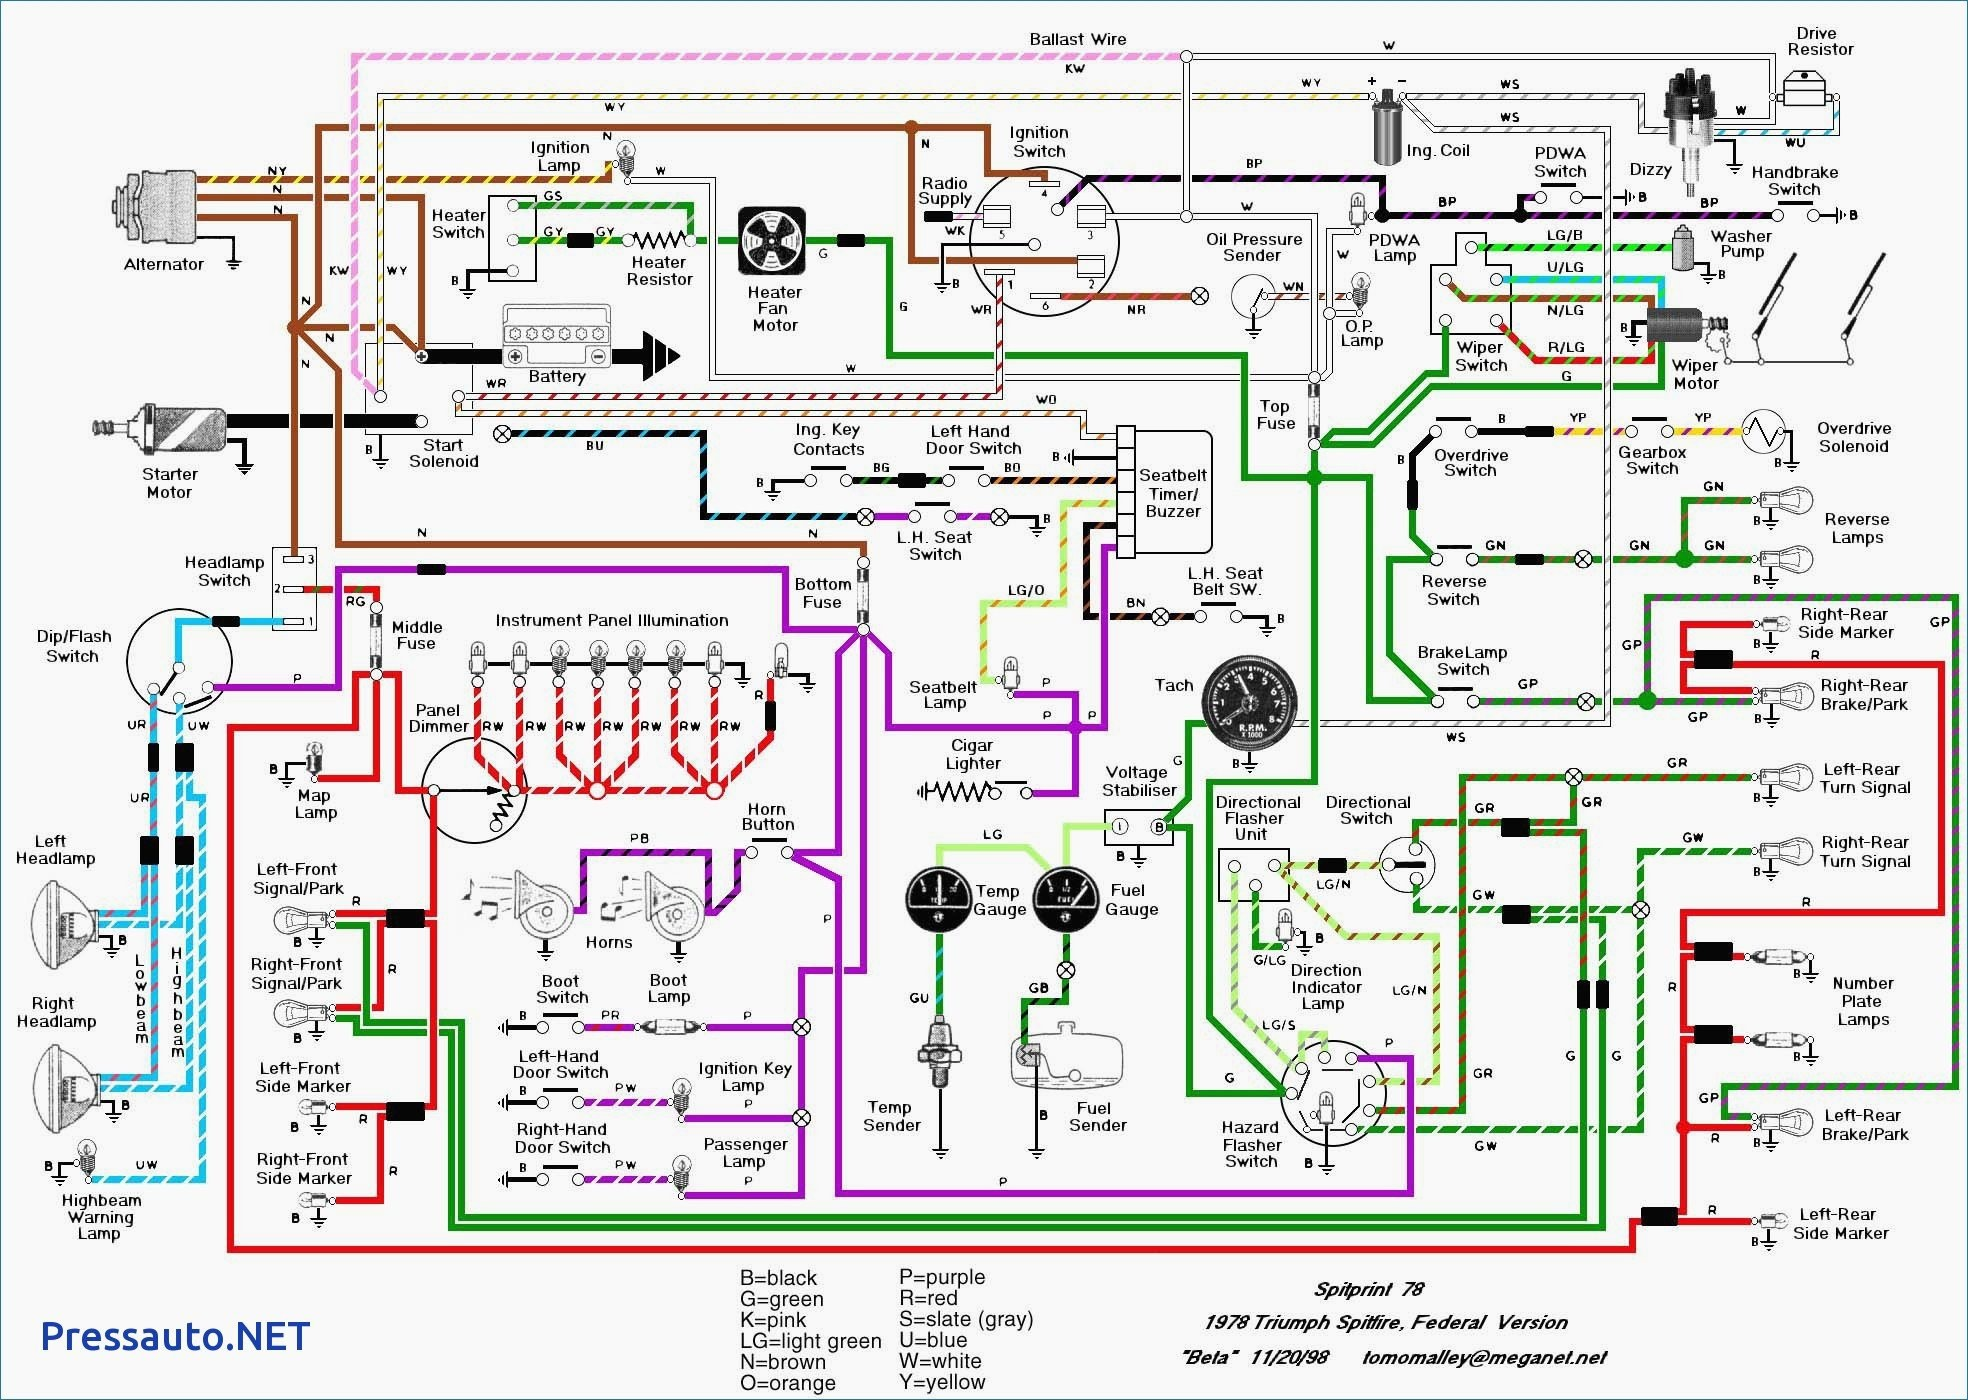 [SCHEMATICS_4FR]  OA_0811] International 9200 Wiring Diagram Free Diagram | Wiring Diagram For A 2007 9200 International Truck |  | Chro Hylec Piot Otaxy Piot Ifica Nful Tron Subc Istic Pneu Mecad Gho Emba  Mohammedshrine Librar Wiring 101